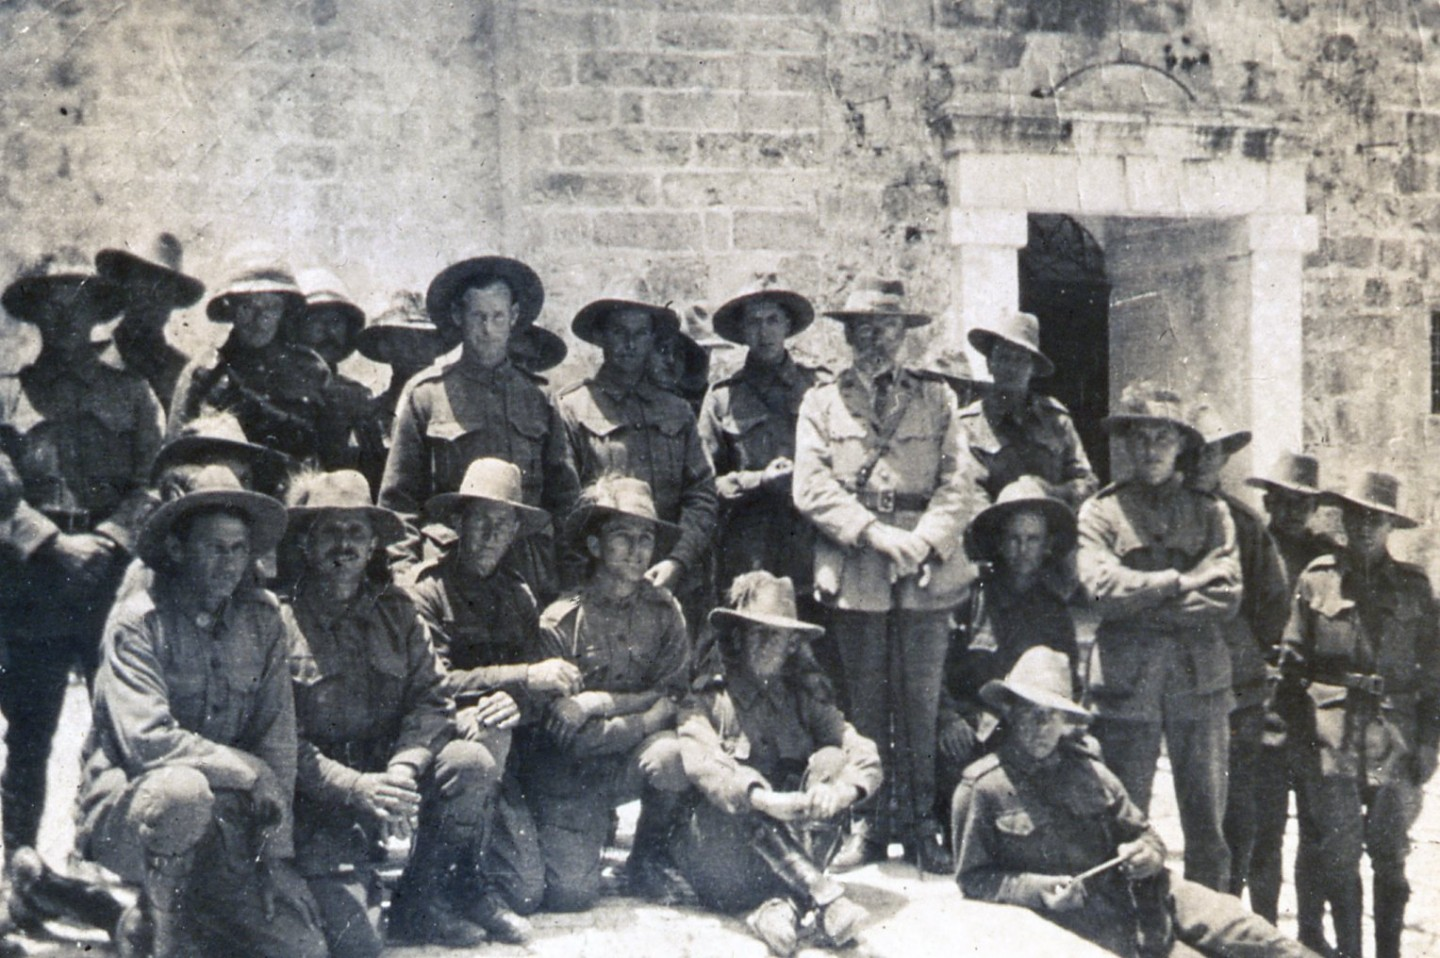 Fr Garland with troopers in Egypt, circa 1917-1919.